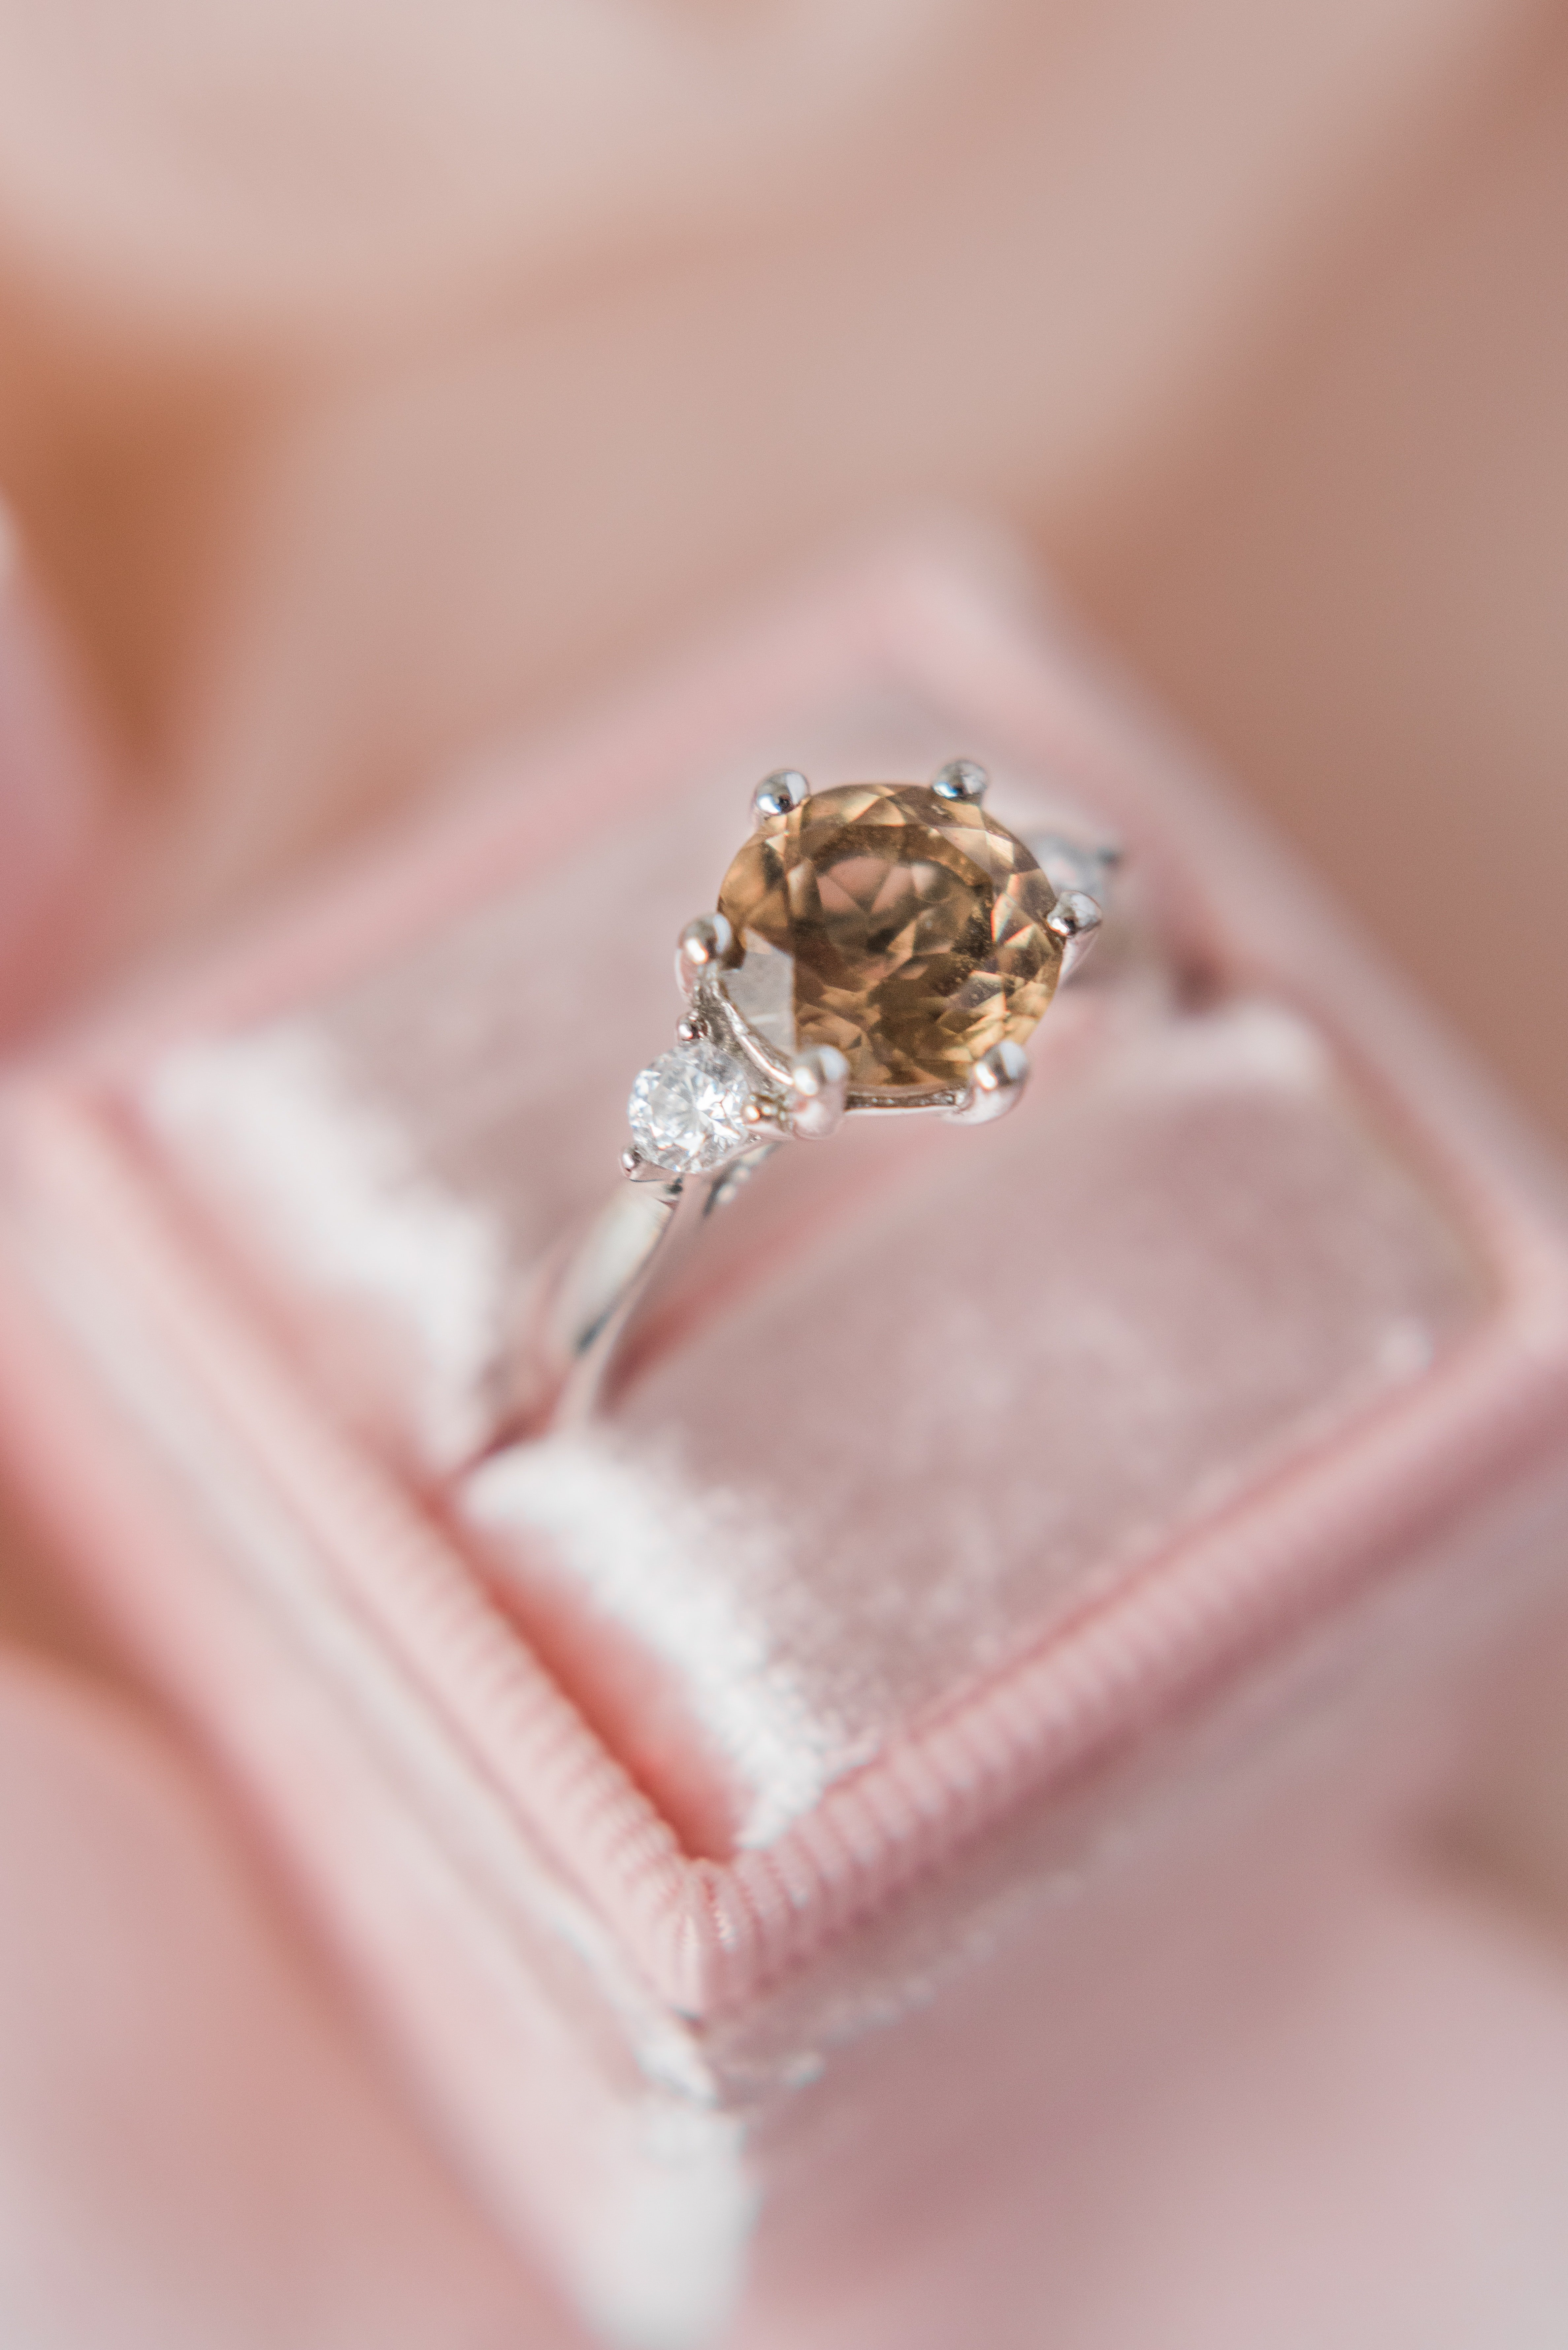 Photo of a diamond ring | Photo: Pexels